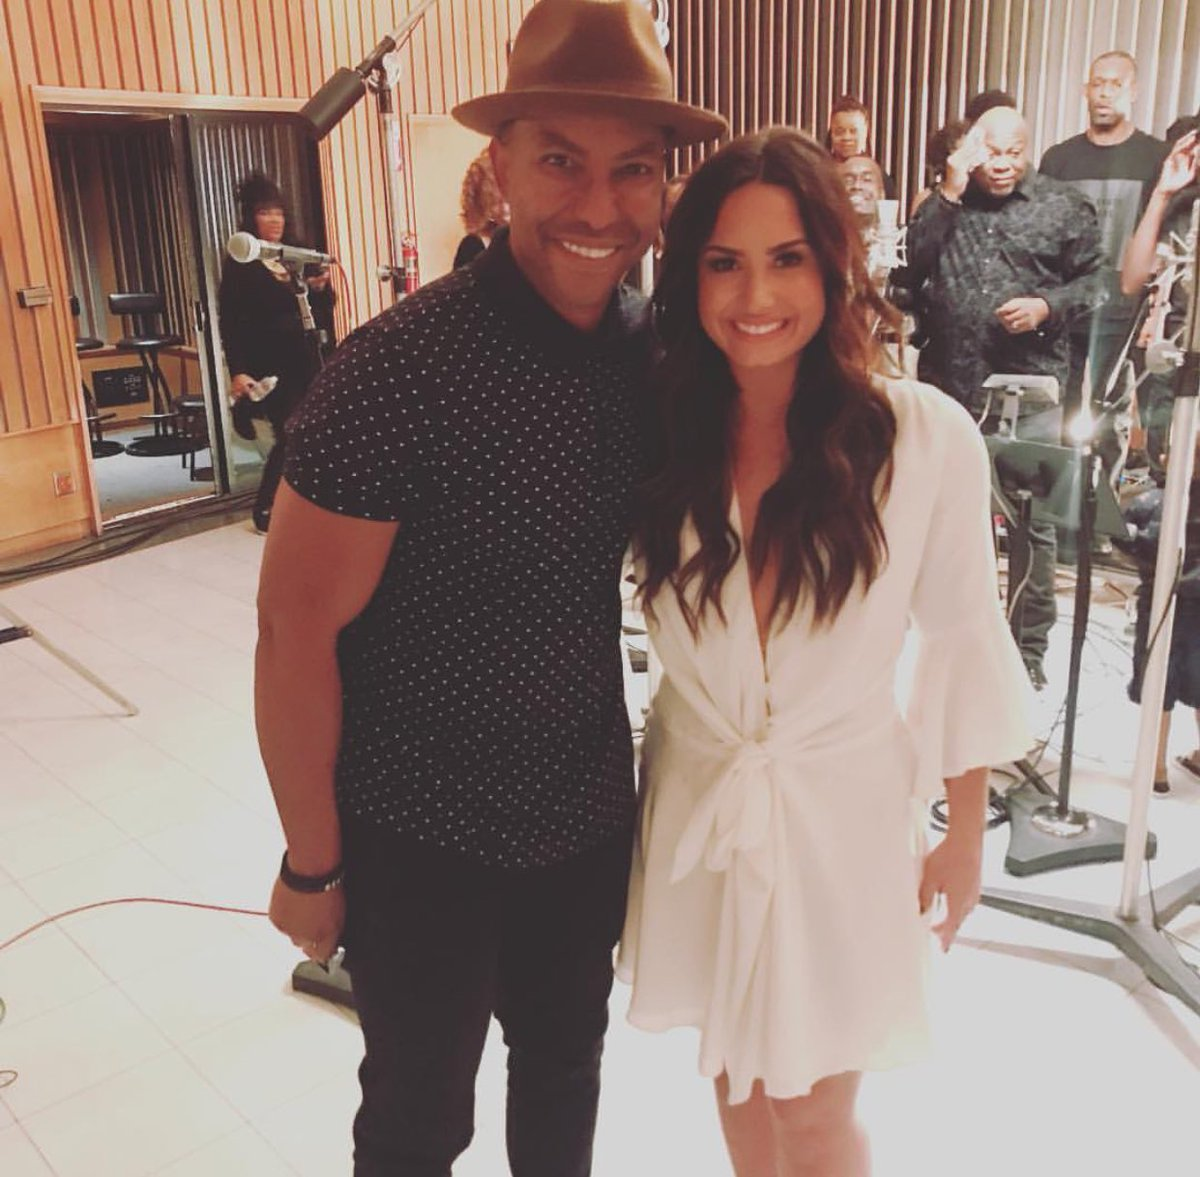 javenonline: Incredible day today #working w/ this #amazing #gift @ddlovato what a #voice!  https://www. instagram.com/p/BXwSVJpFVlZ/  &nbsp;  <br>http://pic.twitter.com/48faG0u8J4